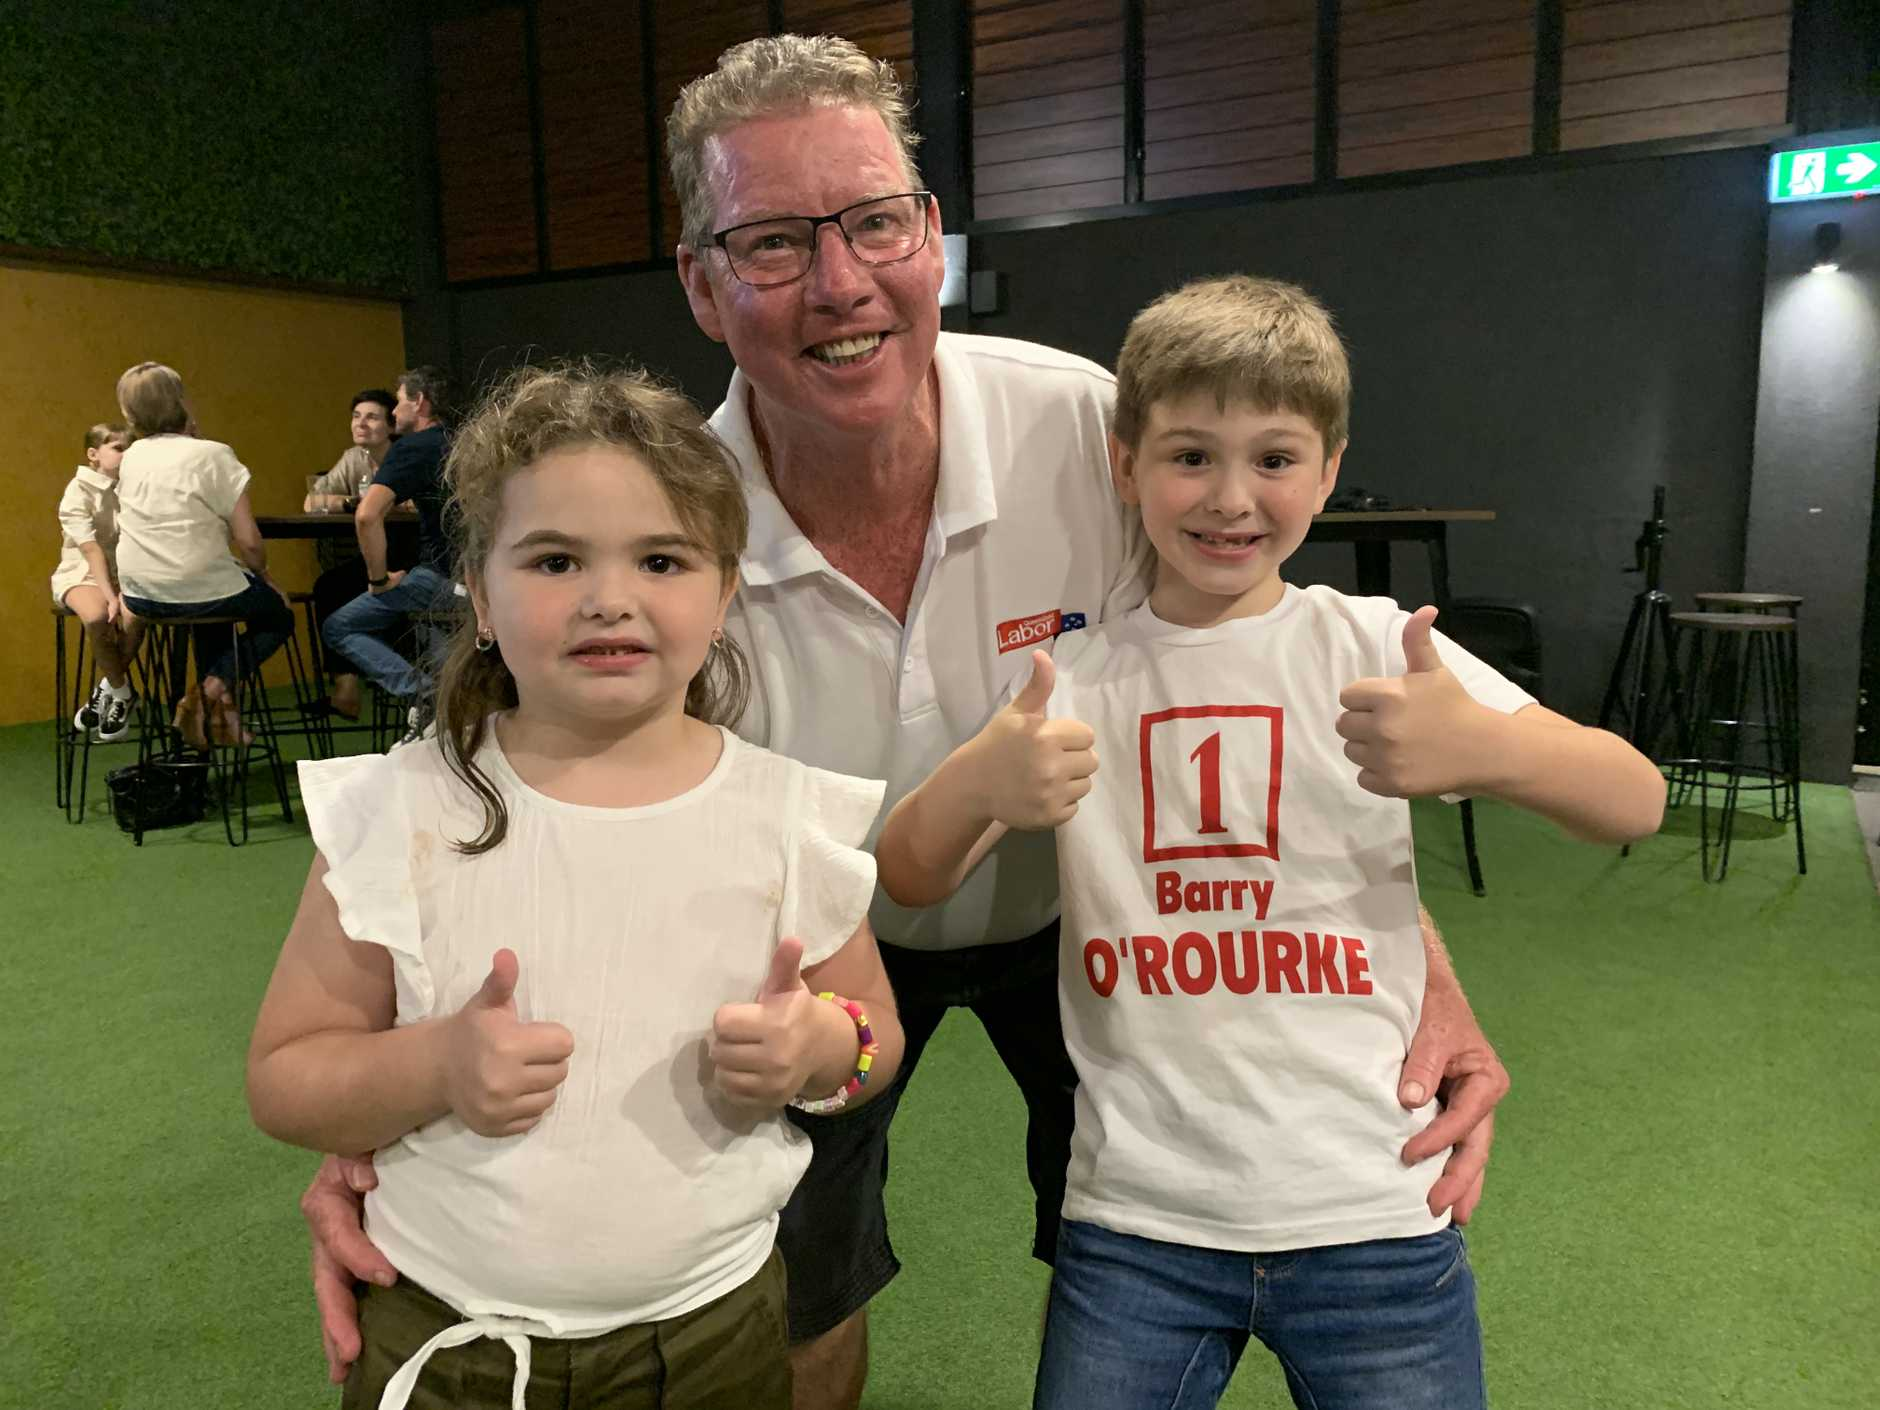 Labor's candidate Barry O'Rourke at the Red Lion with his grand kids Adelyde and Landyn Dwyer who he describes as his